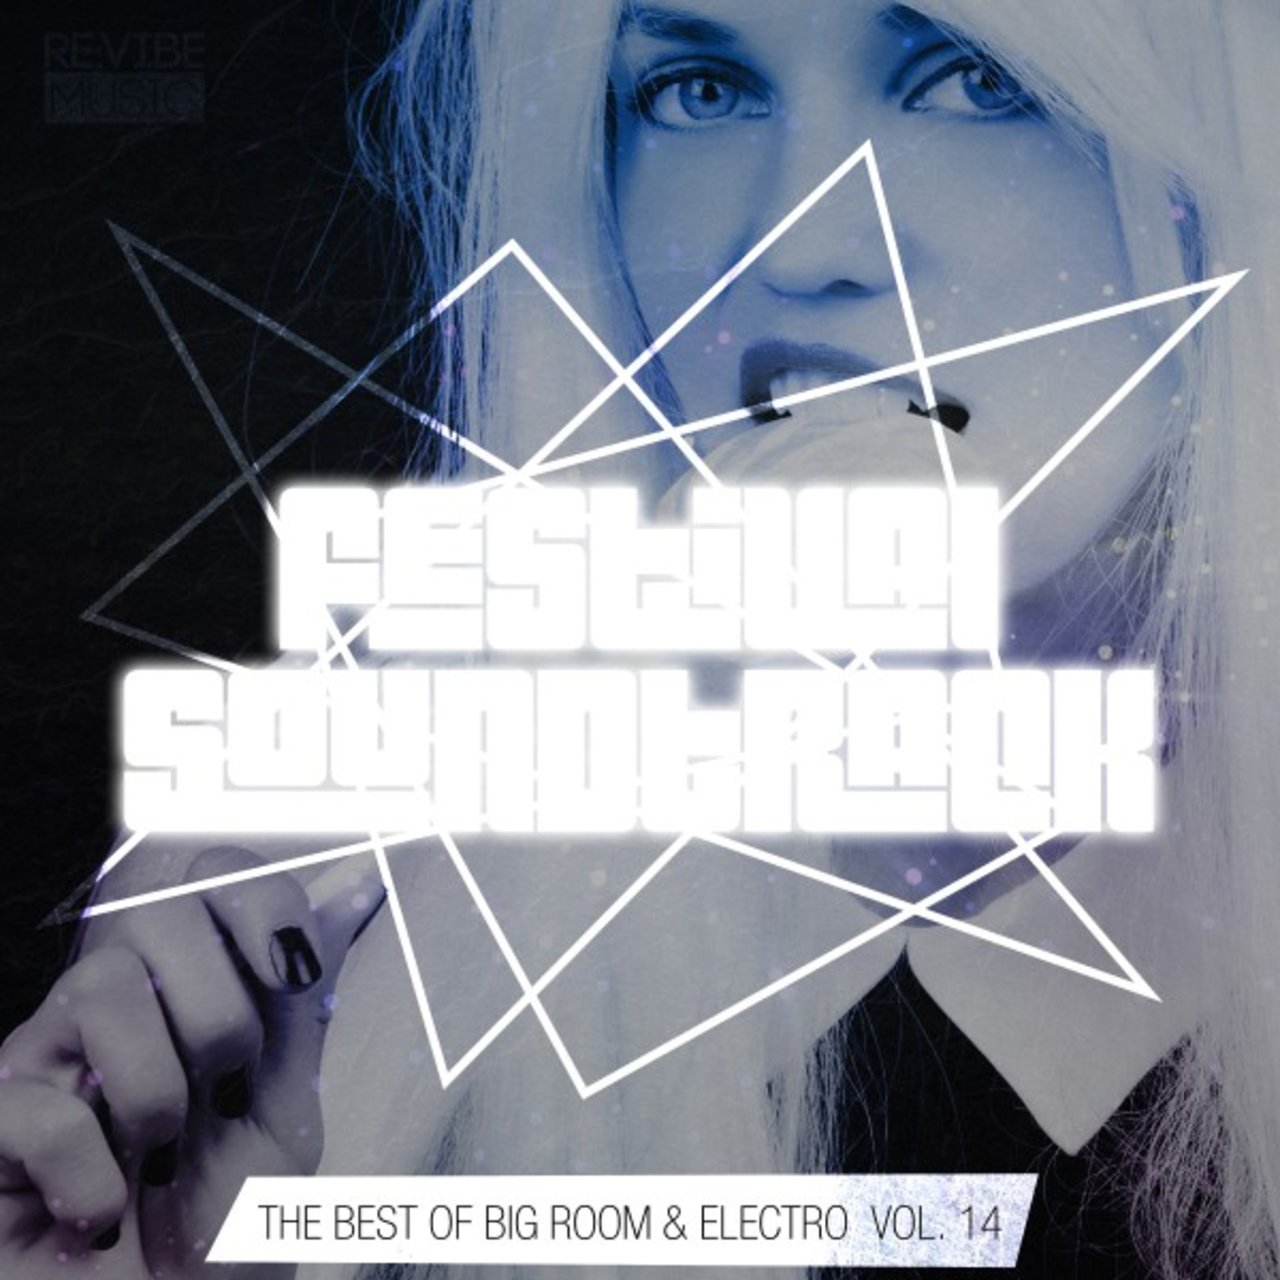 Festival Soundtrack - Best of Big Room & Electro, Vol. 14